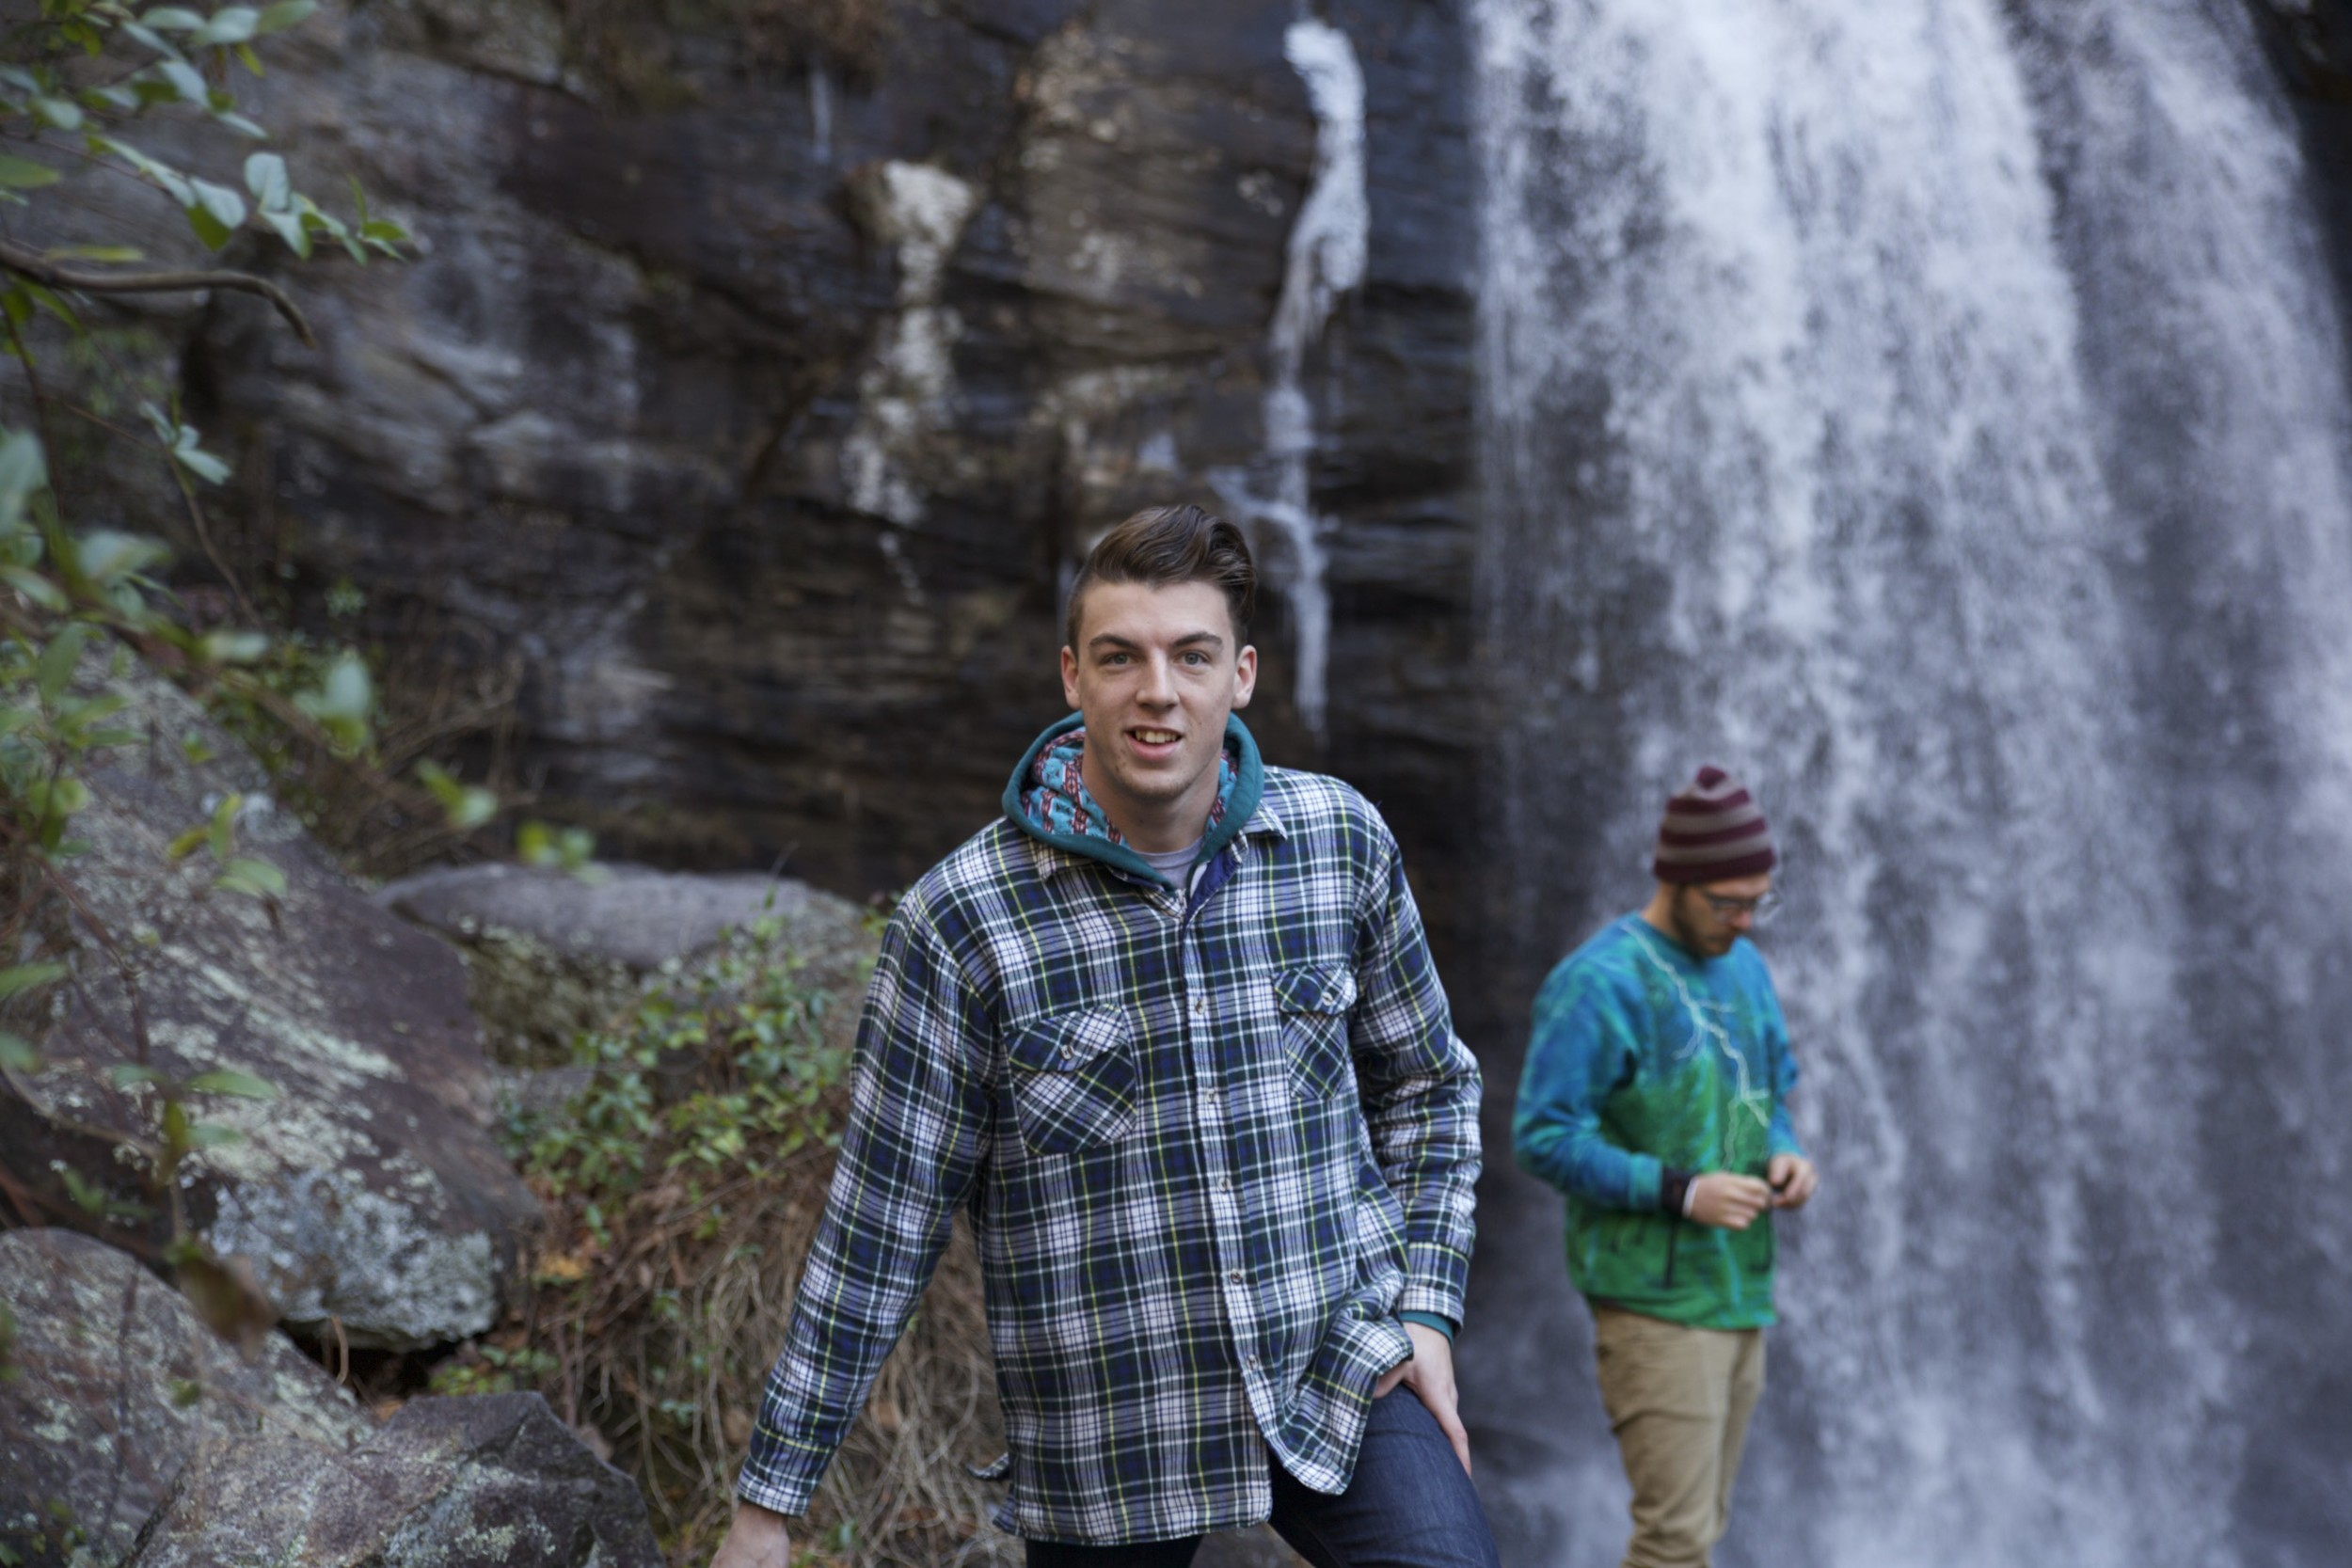 Jeremy and Caleb enjoying the beautiful waterfalls of Pisgah National Forest.